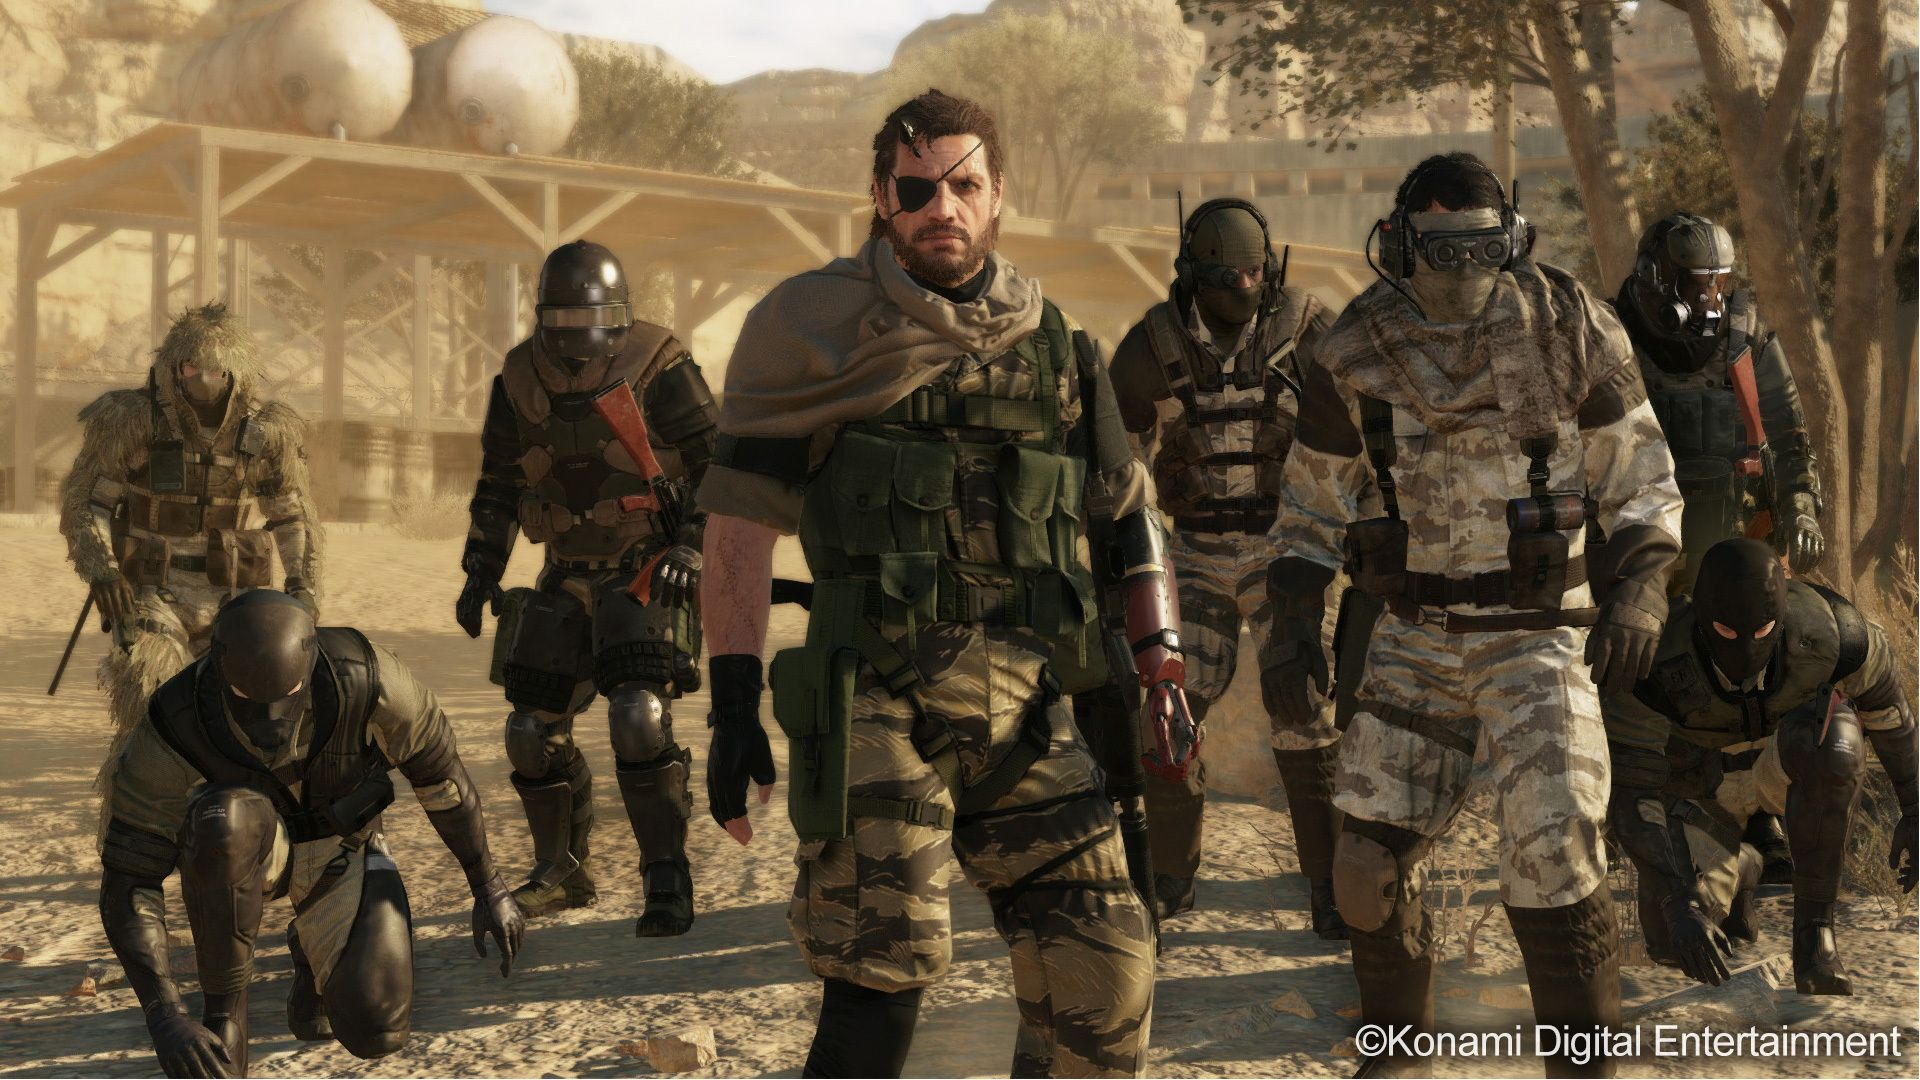 metal gear solid v the phantom pain image - ghostkiller_485 - mod db